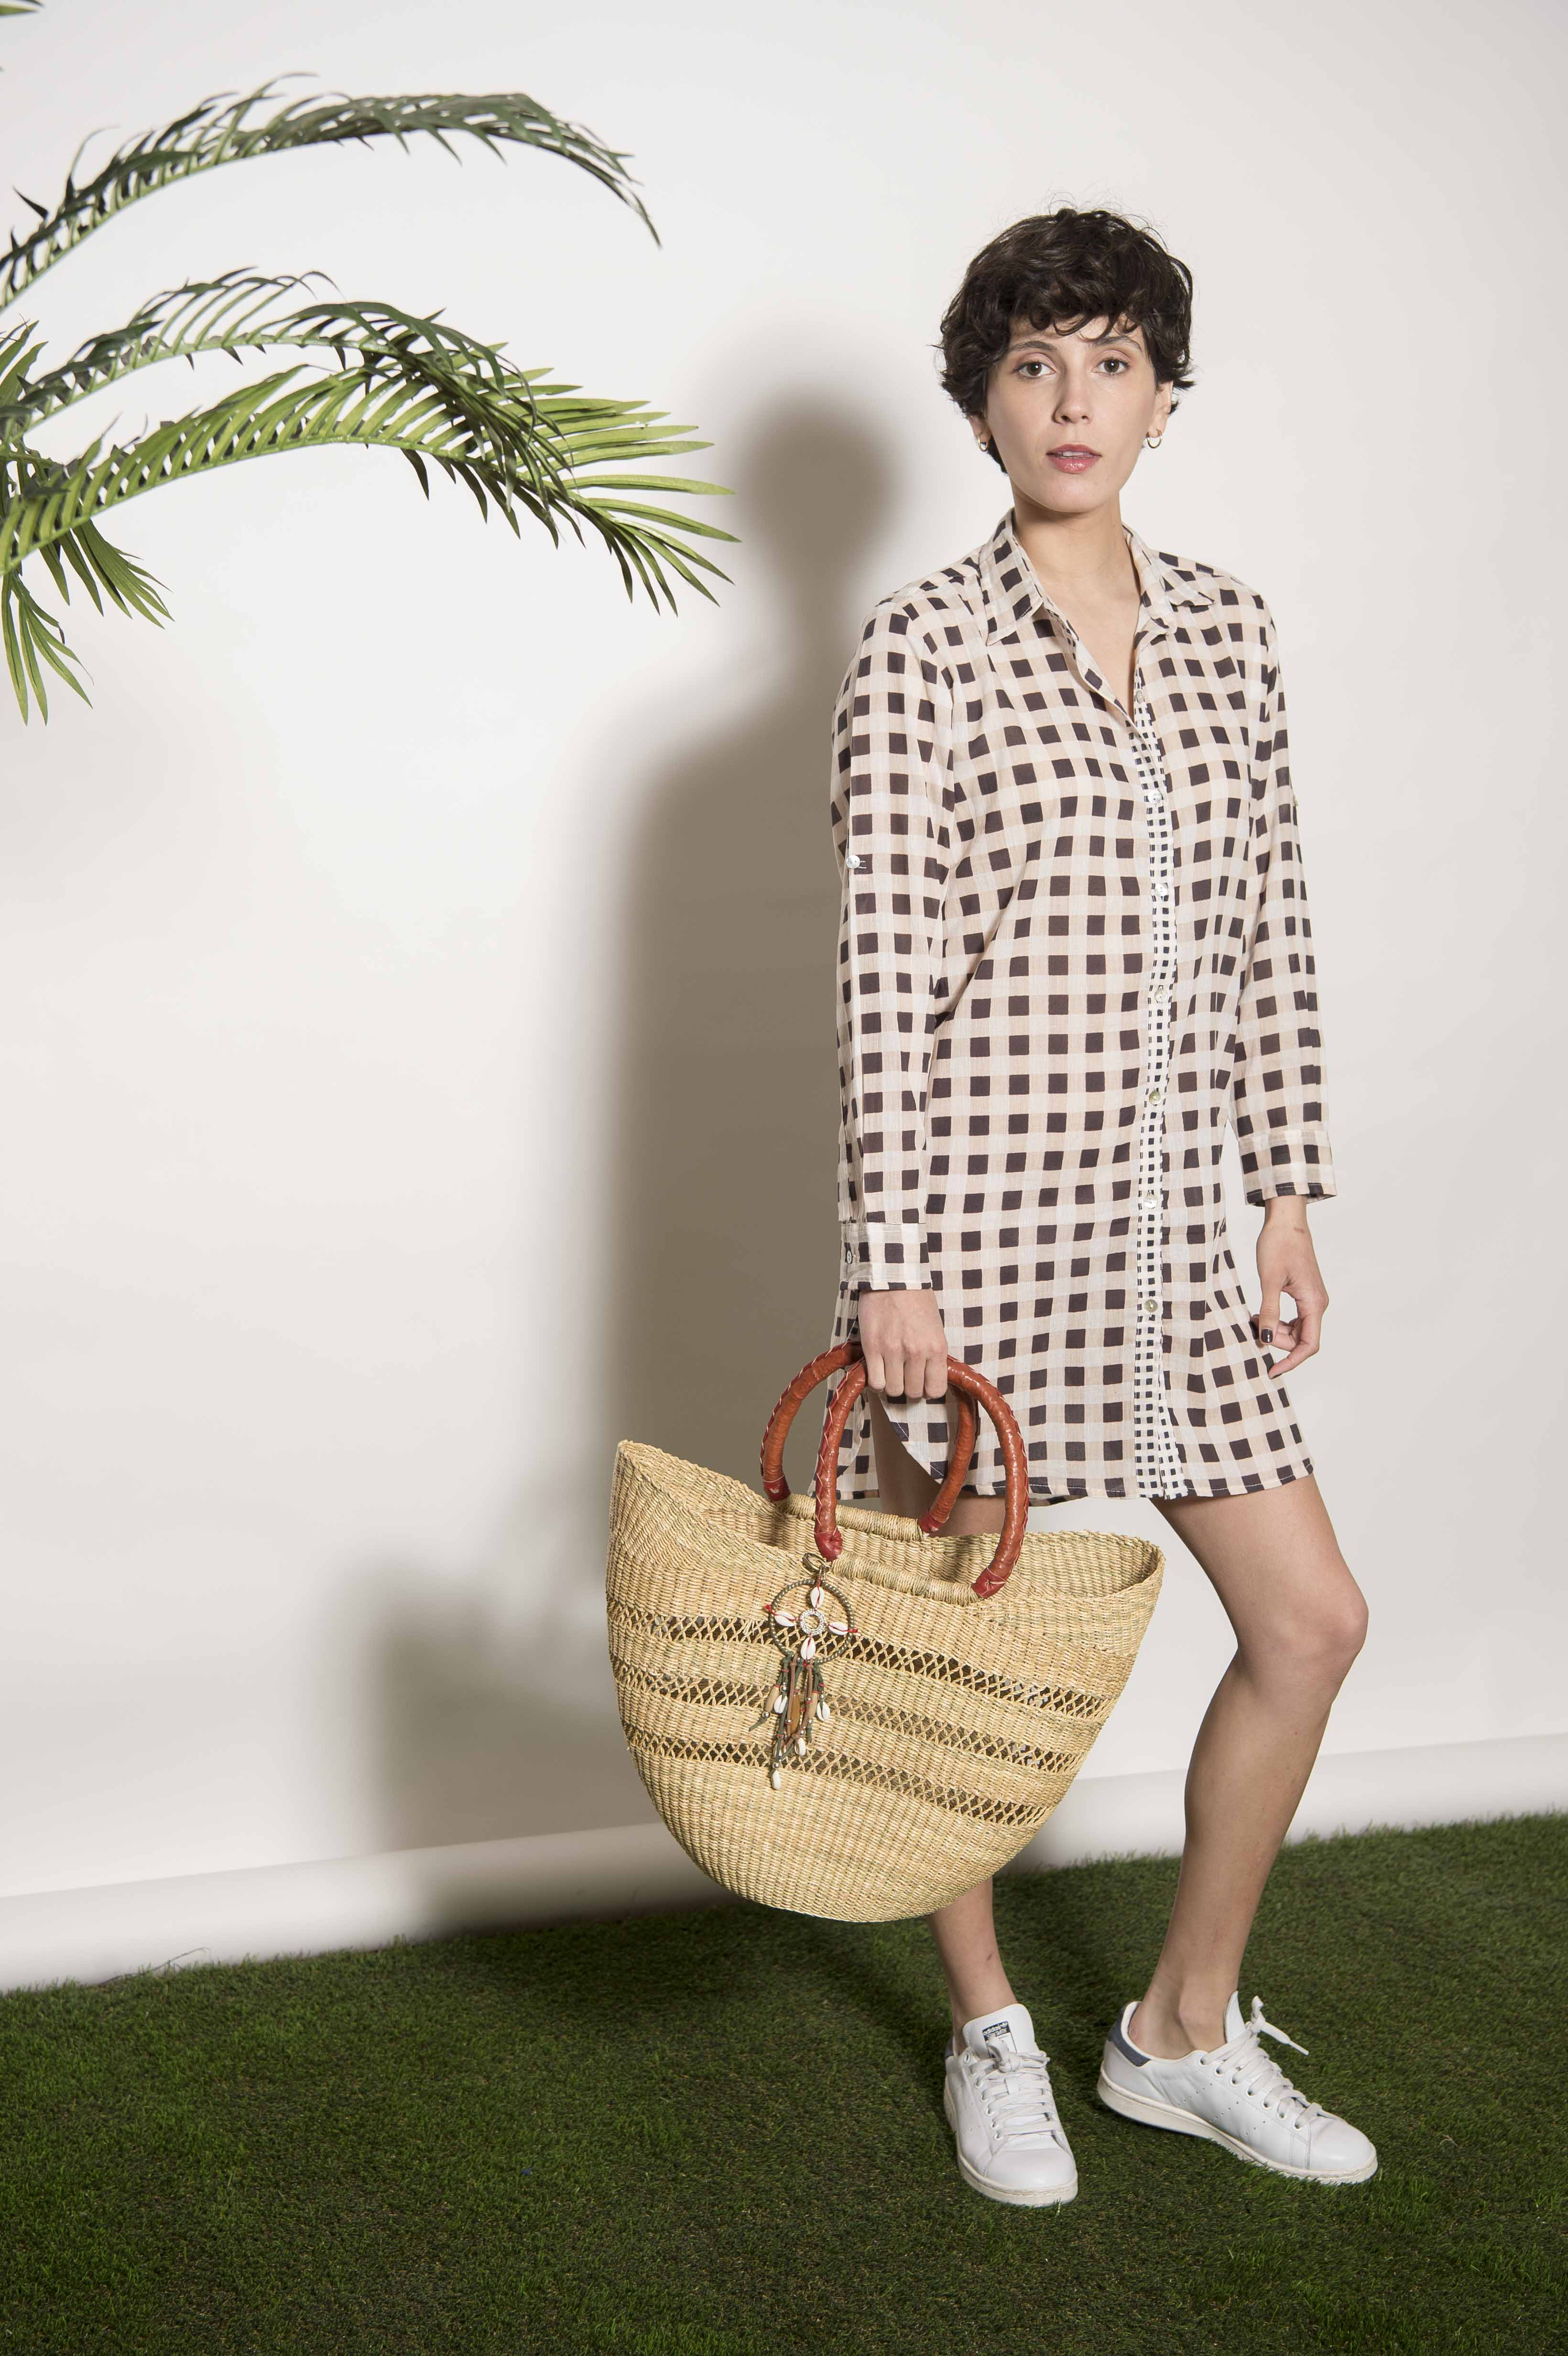 100% palm and leather basket